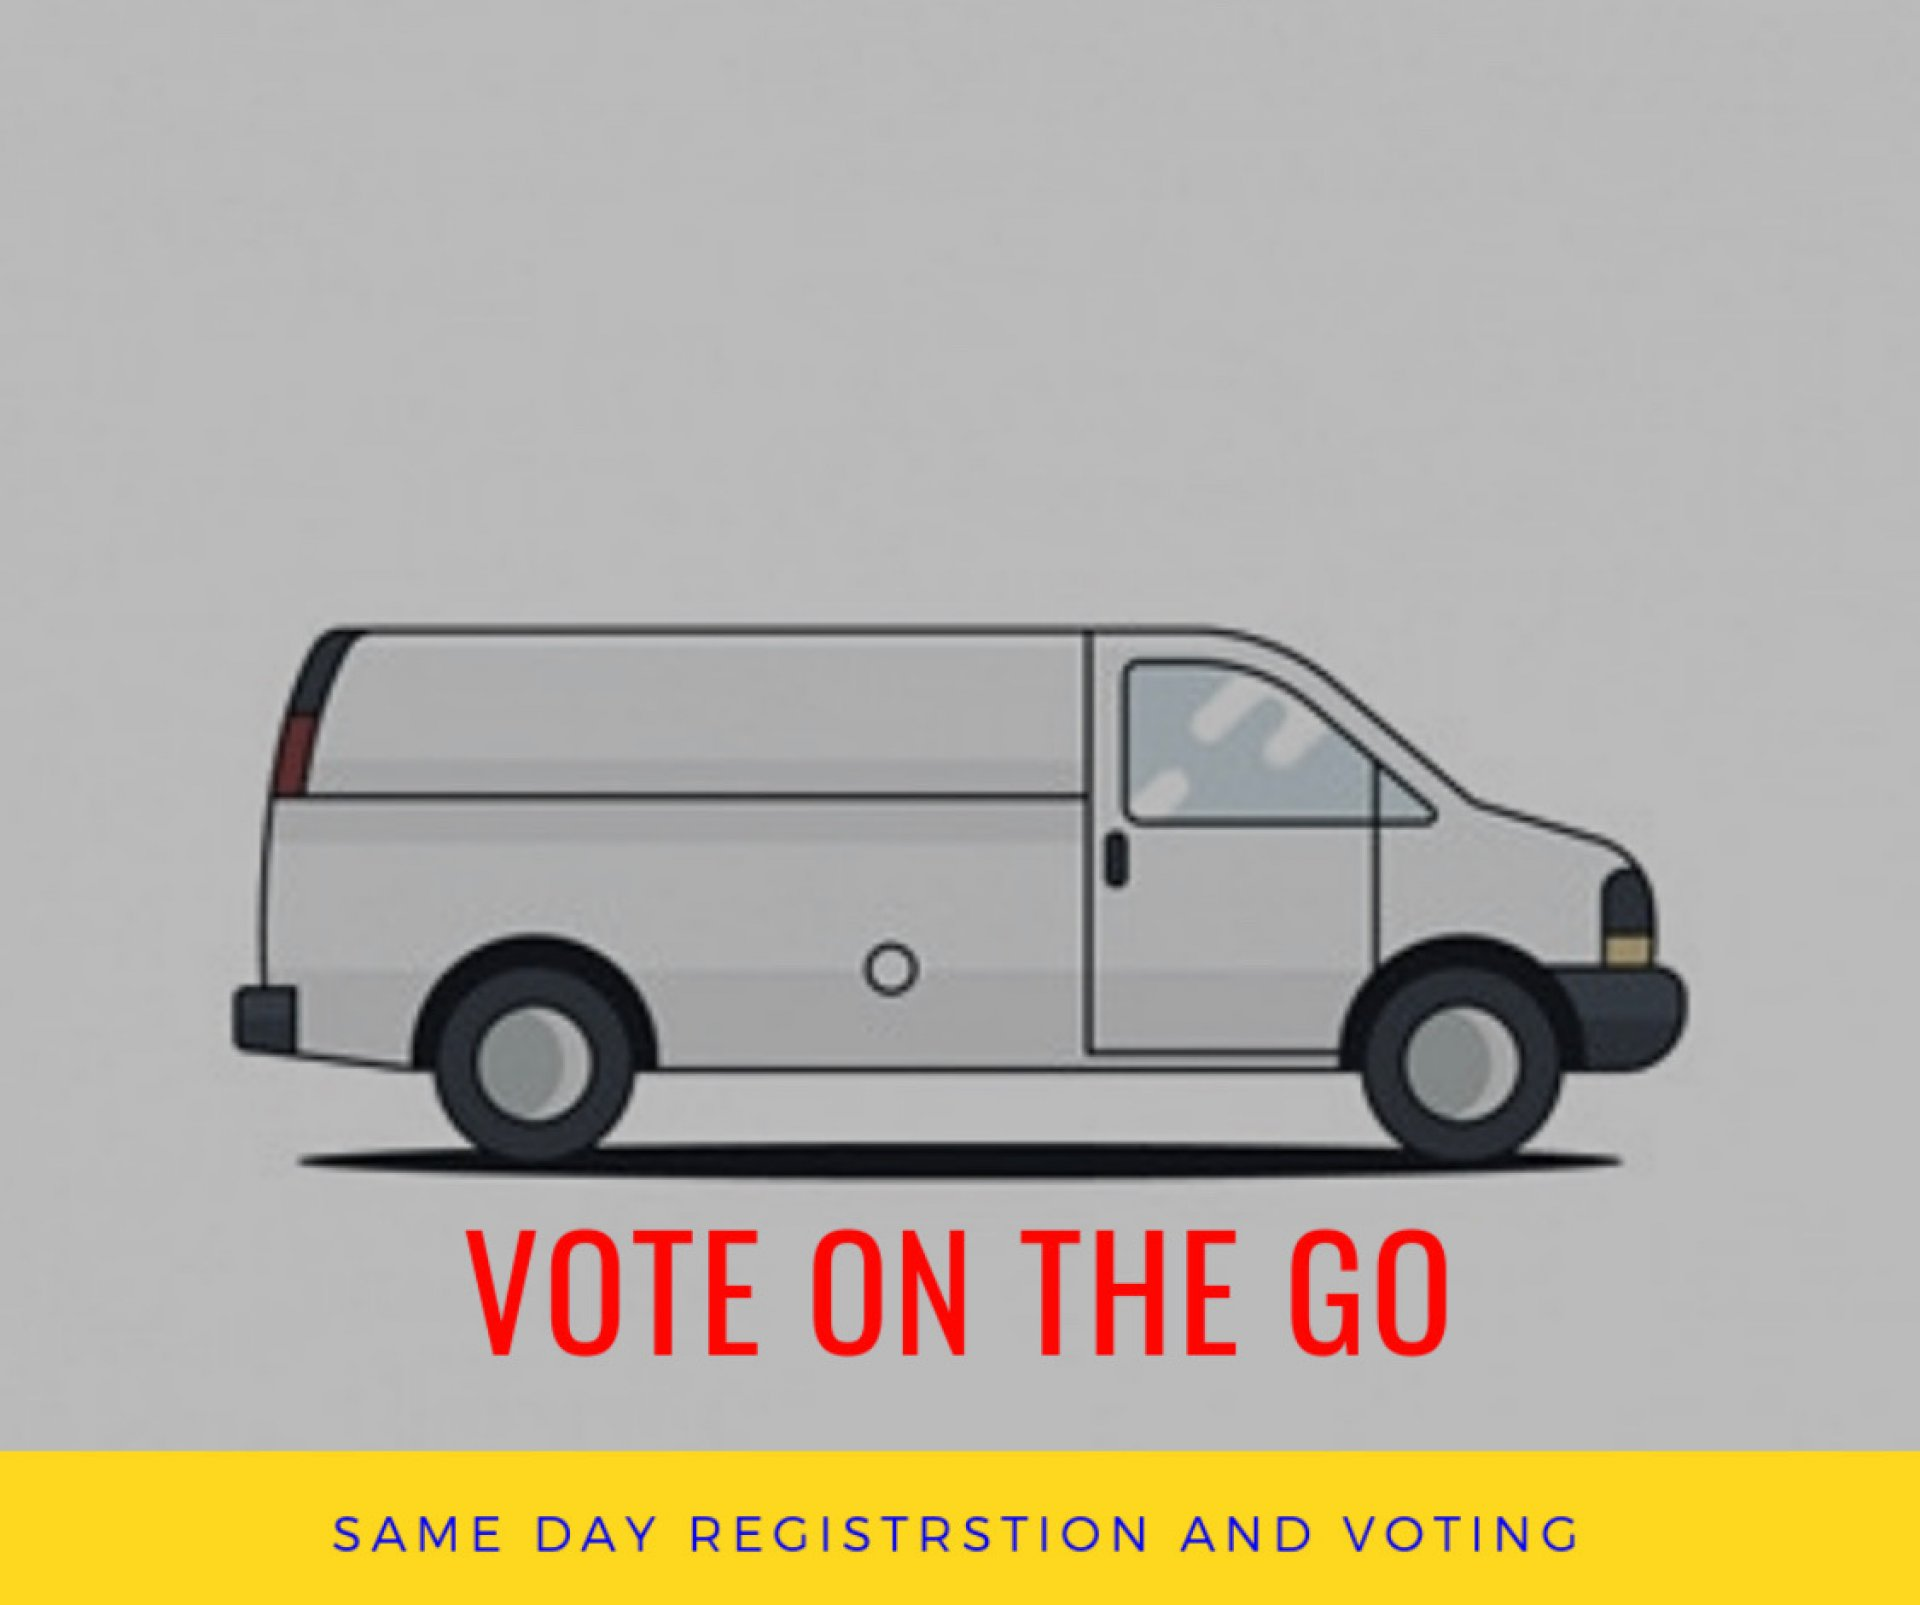 A voter van will be running from HSU's Library Circle every hour starting at 11 a.m. on Nov. 6 for the midterm elections. | Photo Illustration by Megan Bender